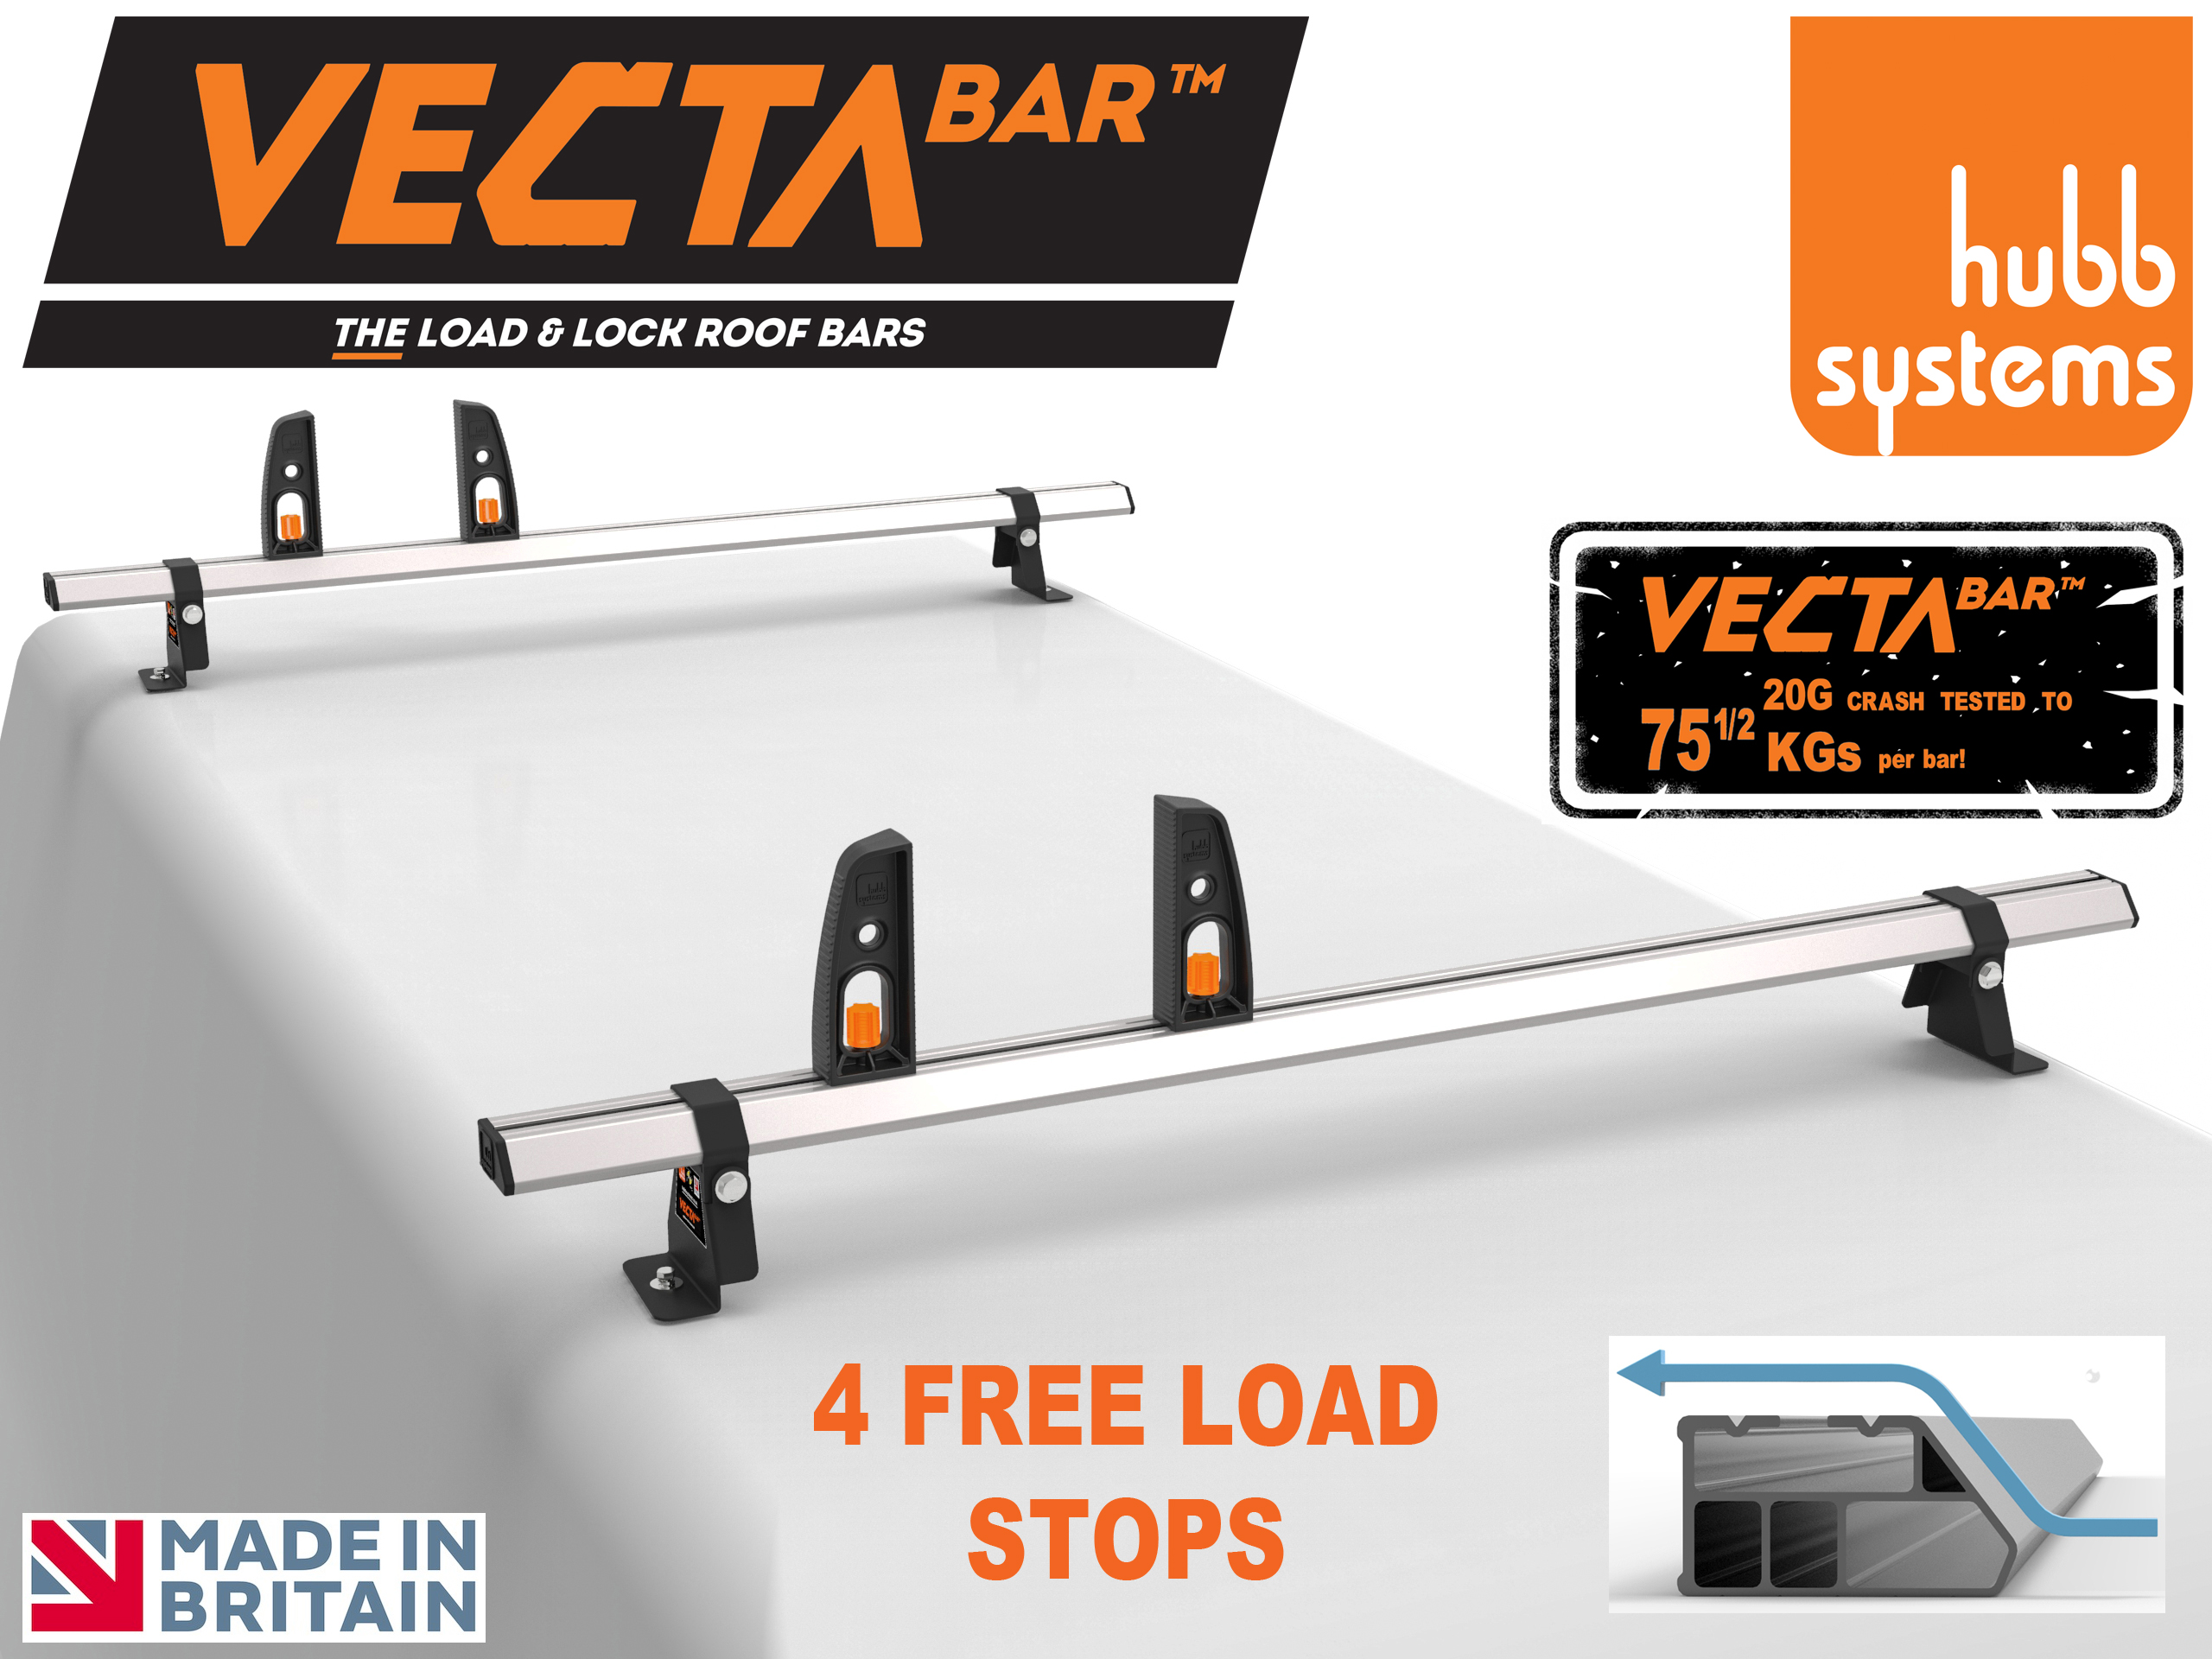 VECTA Bar - Probably UK's Strongest Roof Bar - Best online prices - up to 35% discount